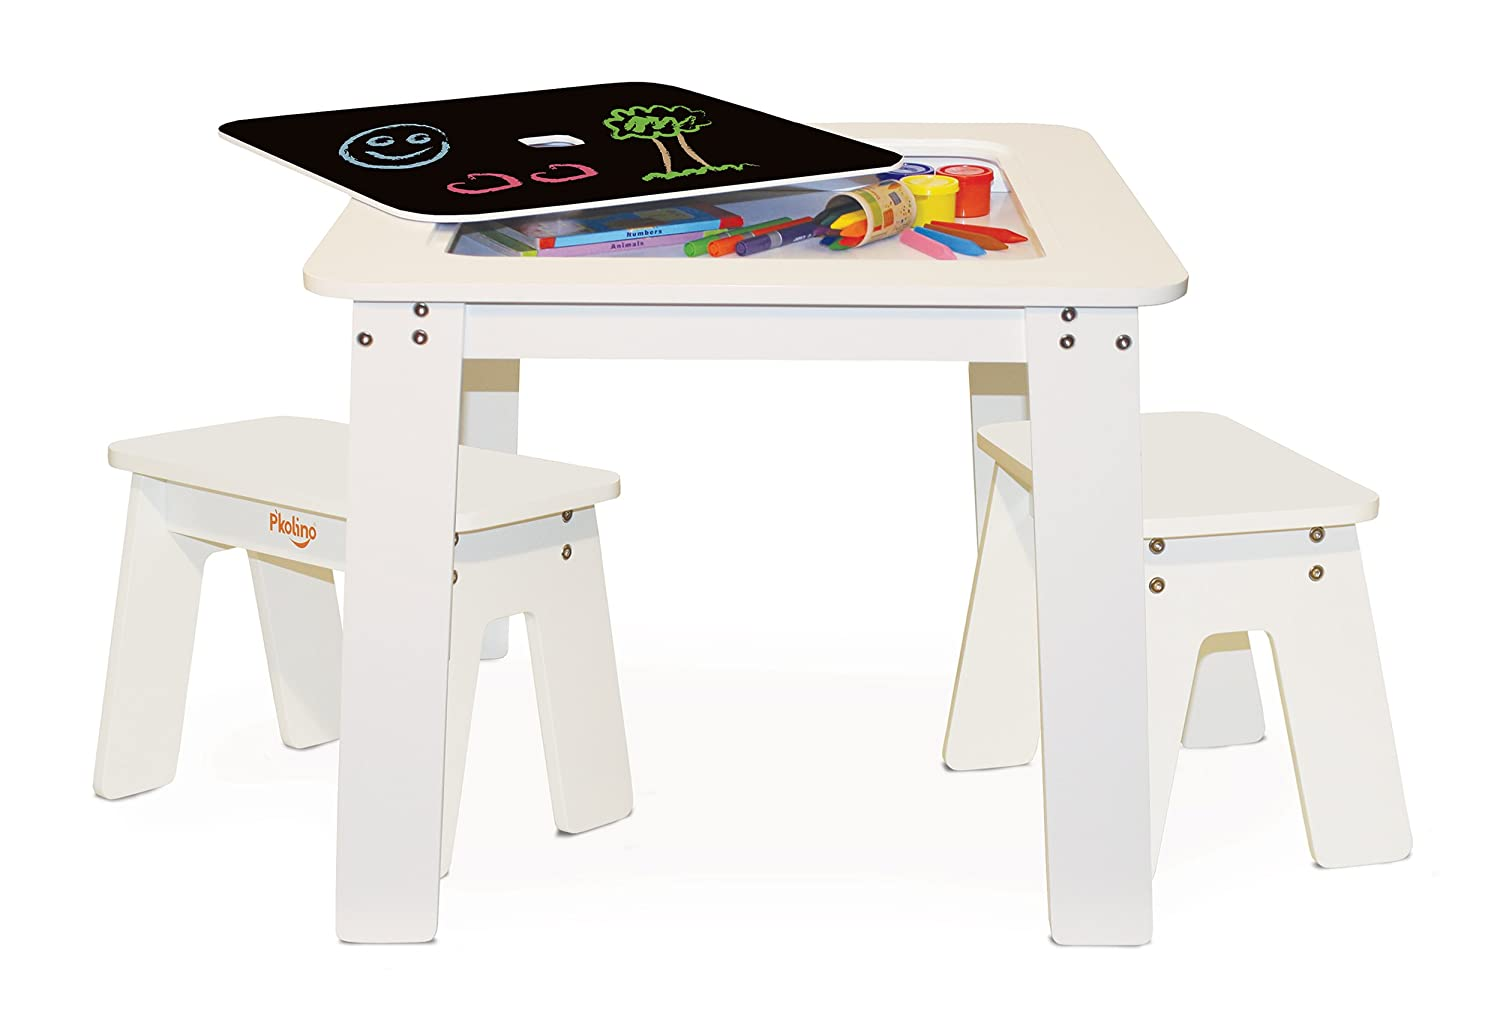 P'kolino PKFFCTOR Craft Table, Orange P' kolino PKFFCHTWHT